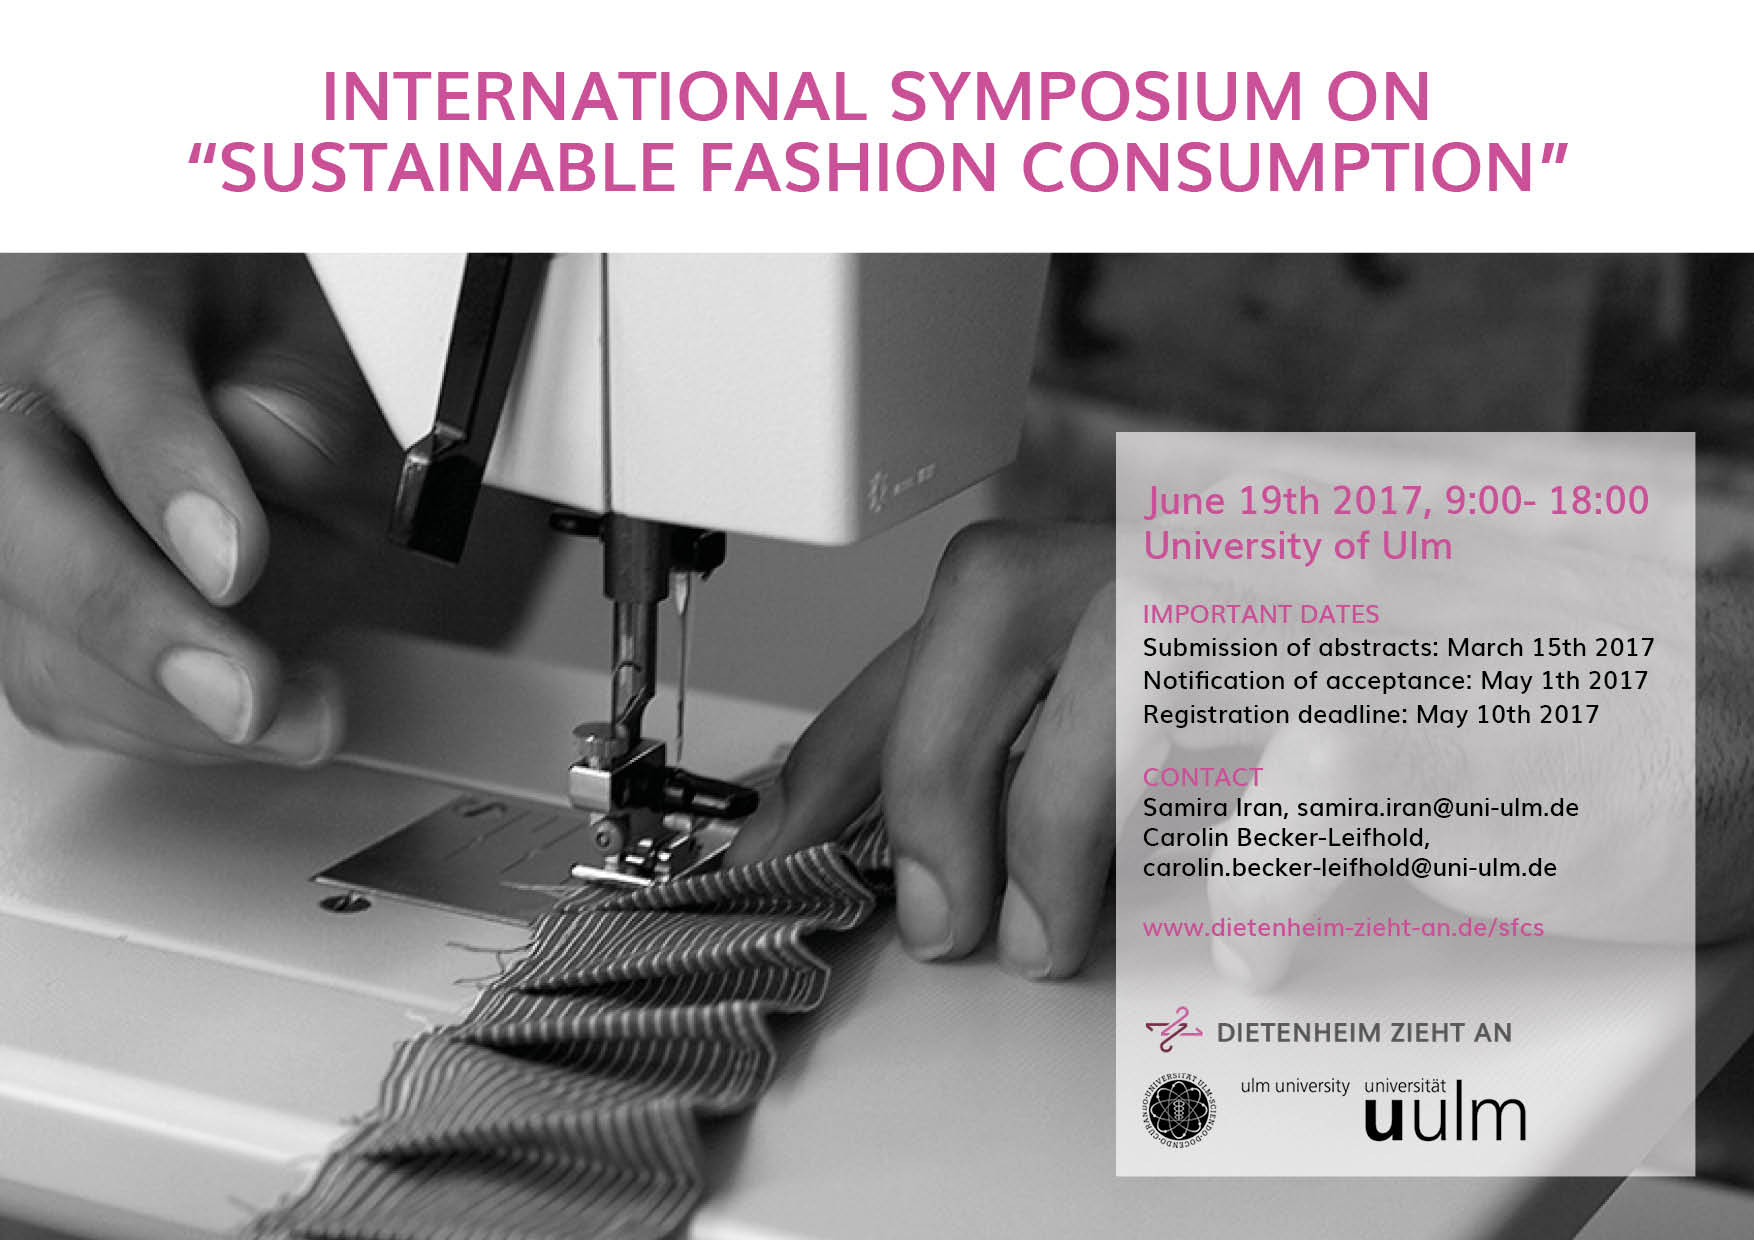 Symposium on Sustainable Fashion Consumption